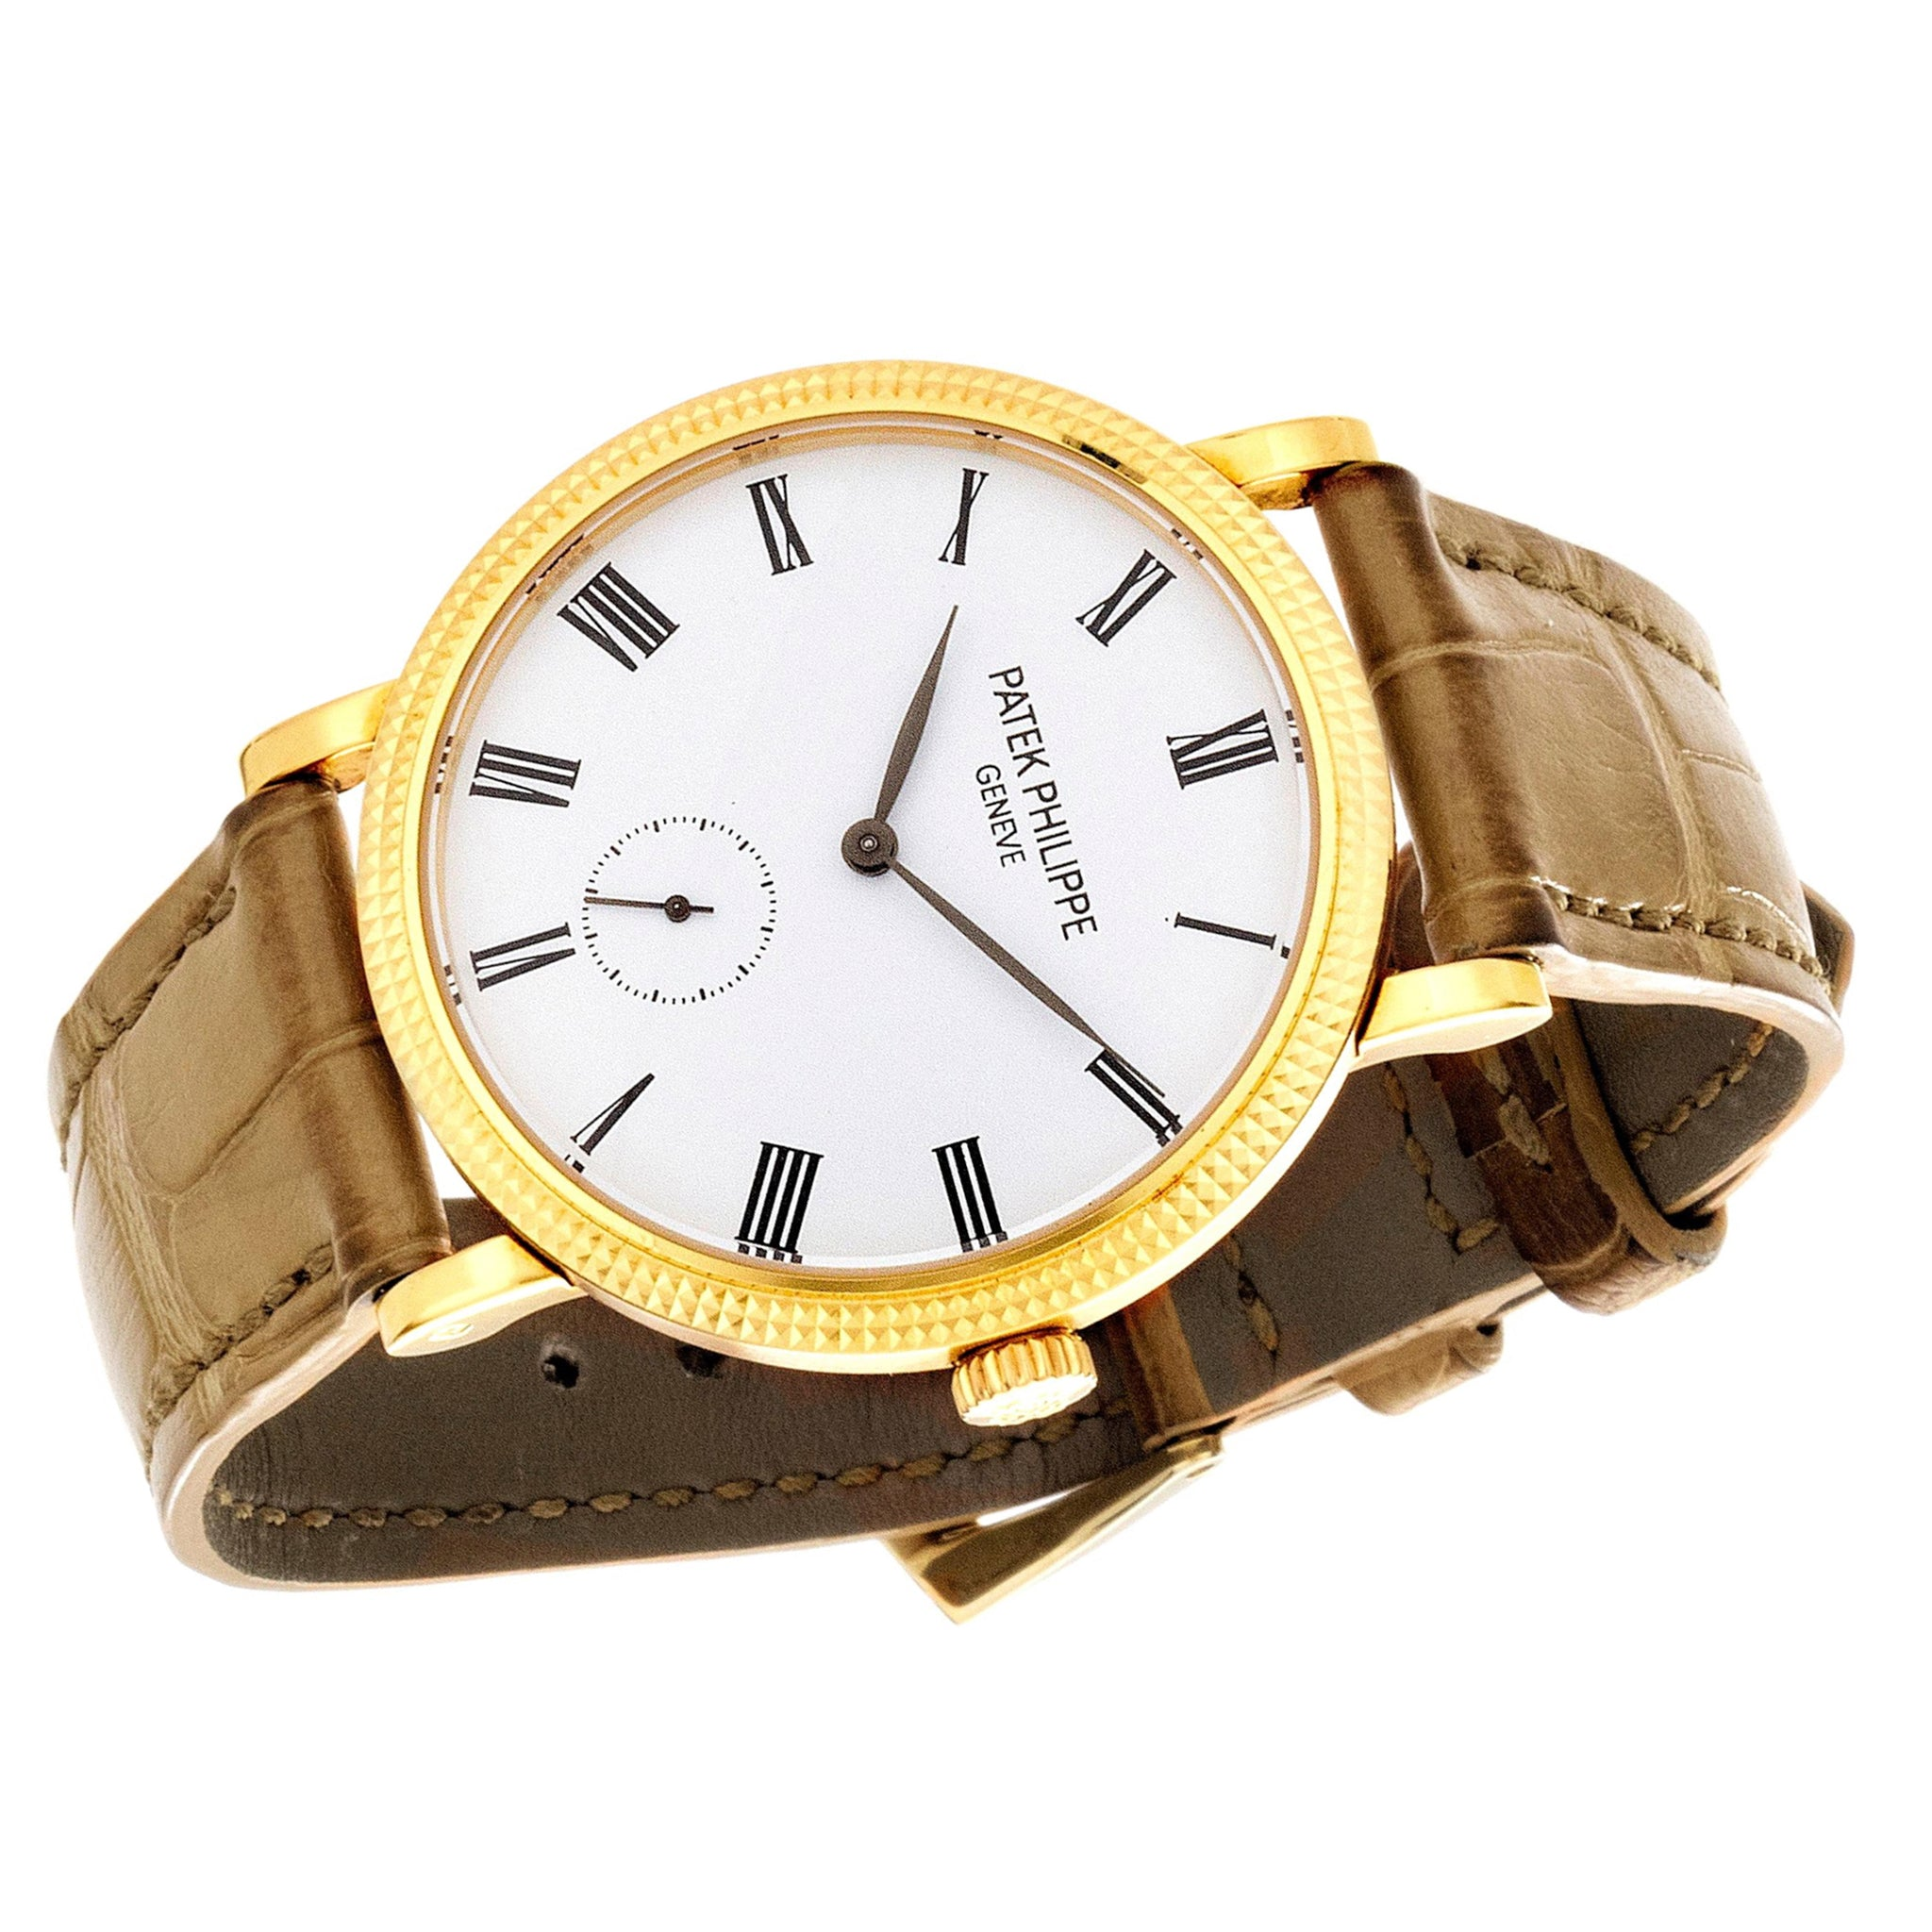 Patek Philippe 7119J Ladies Calatrava Watch